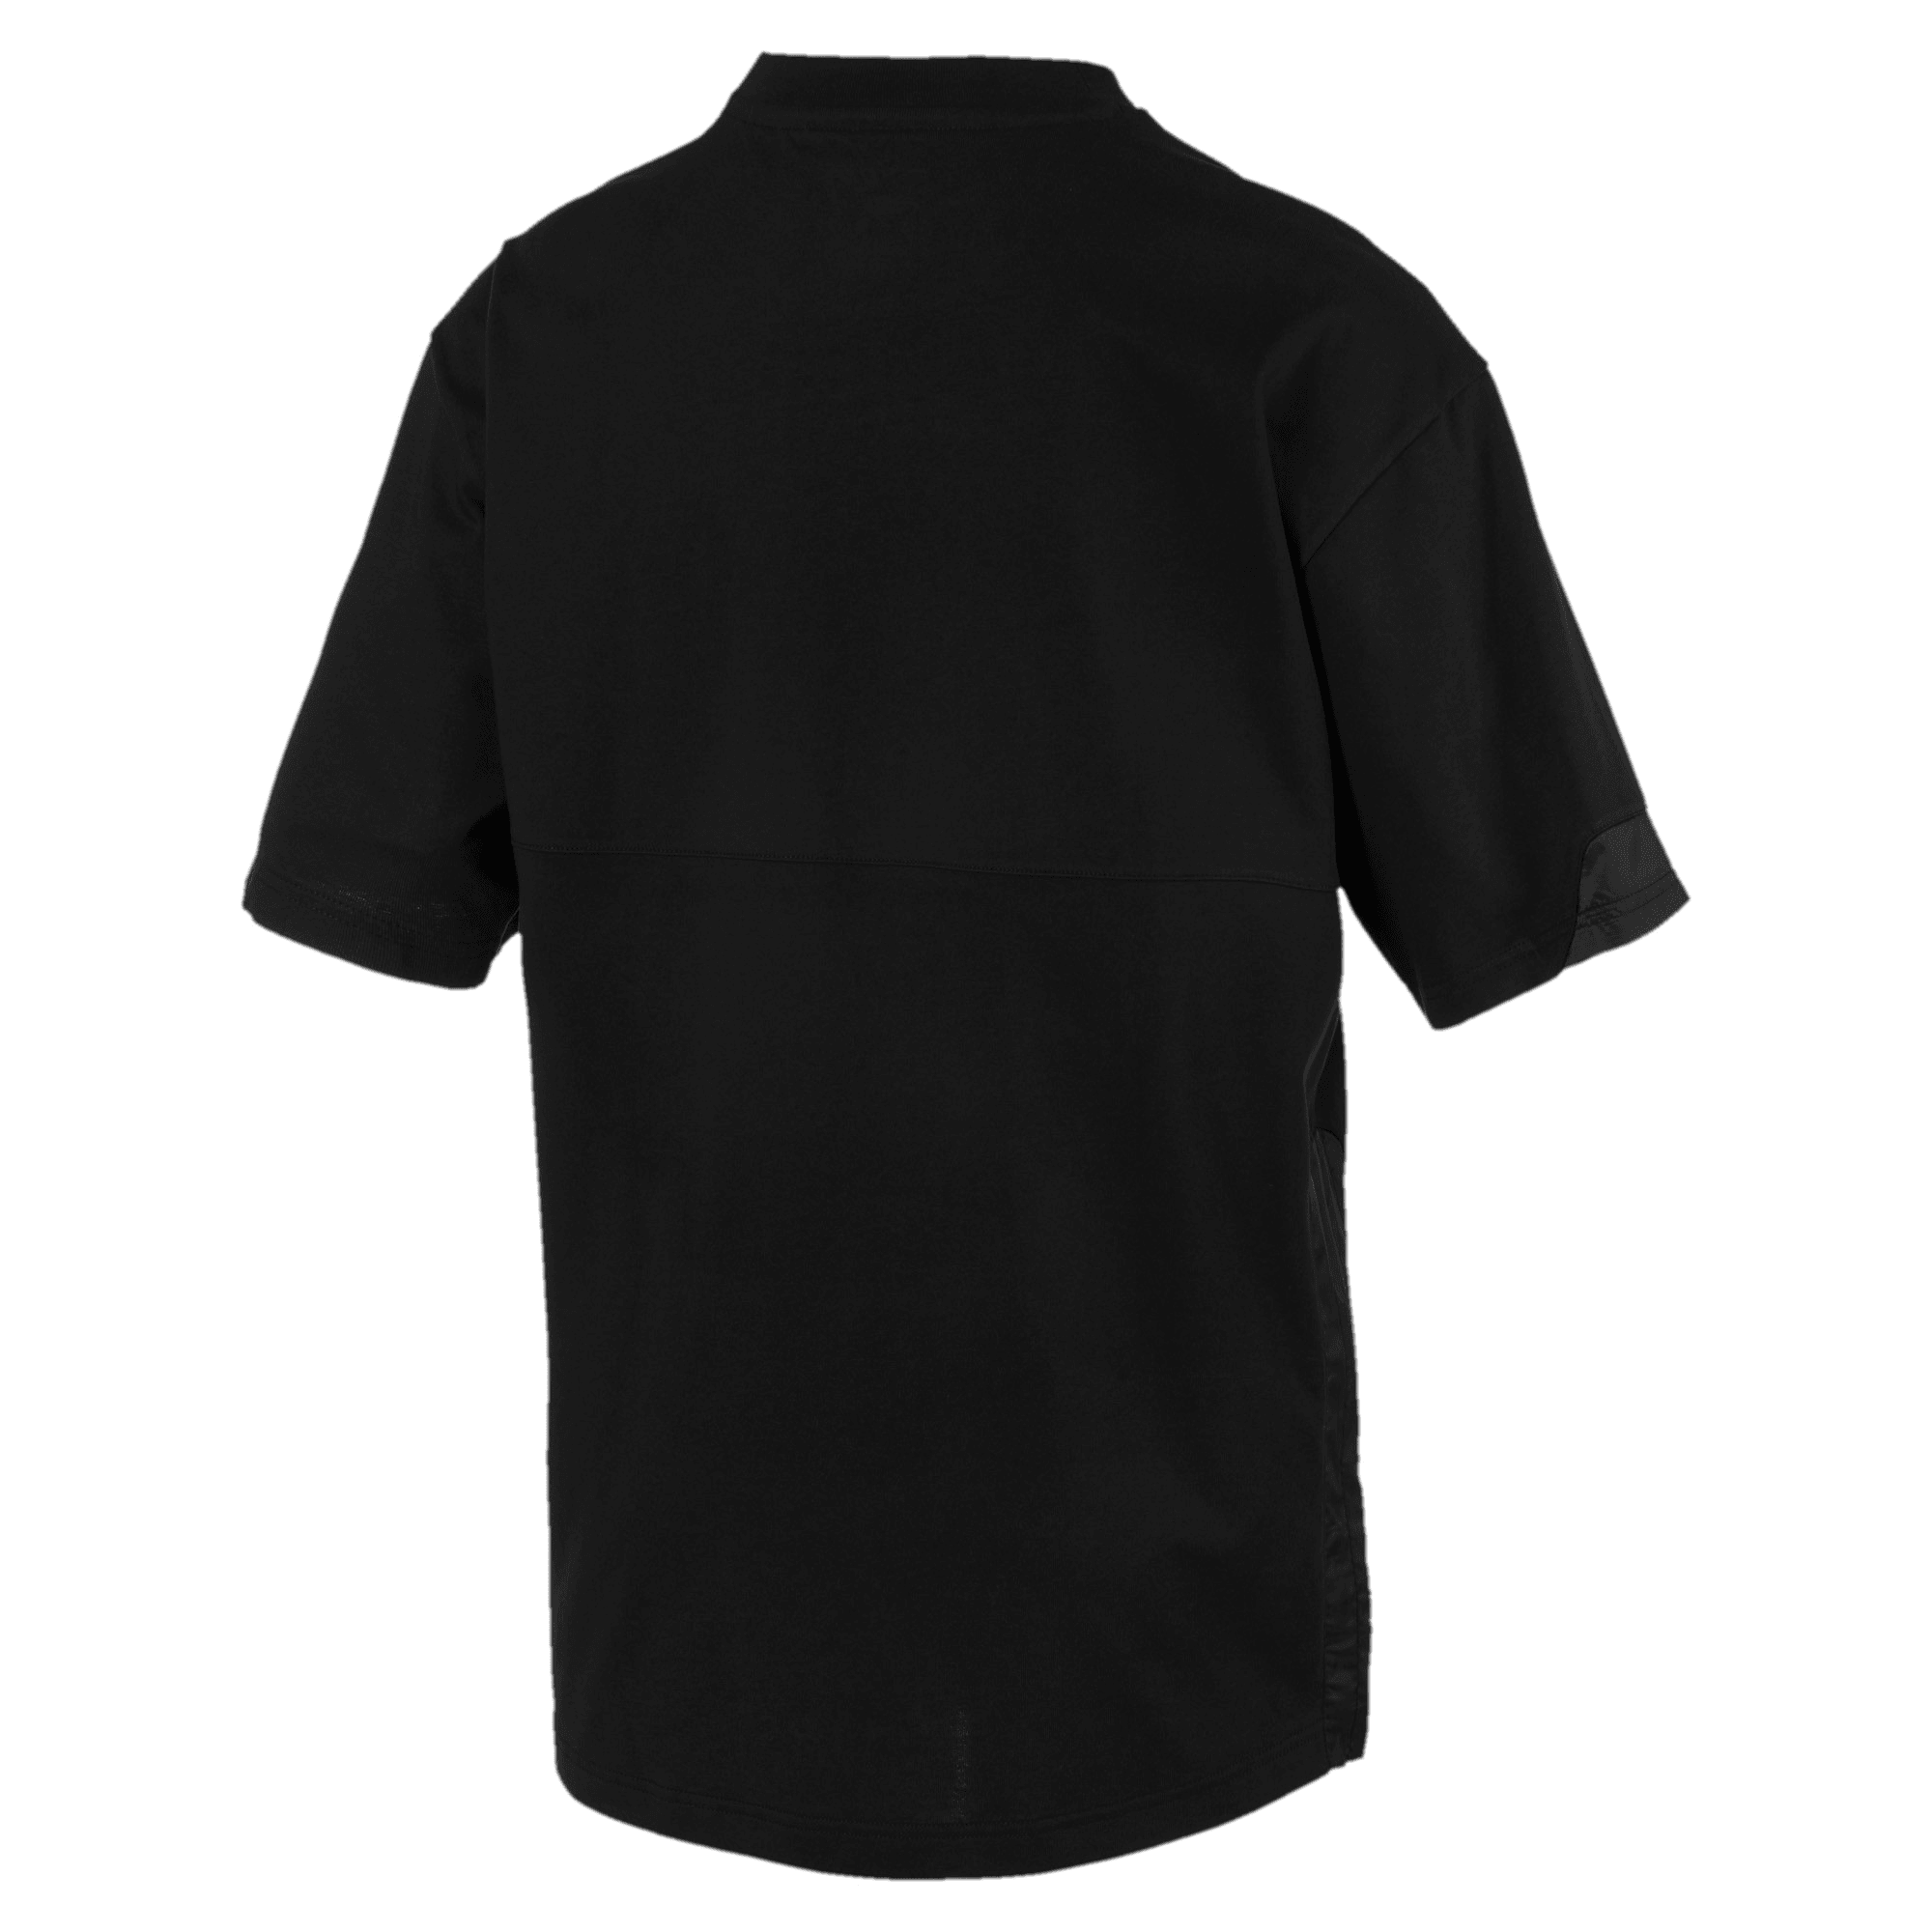 Thumbnail 2 of Ferrari Lifestyle Men's Tee, Puma Black, medium